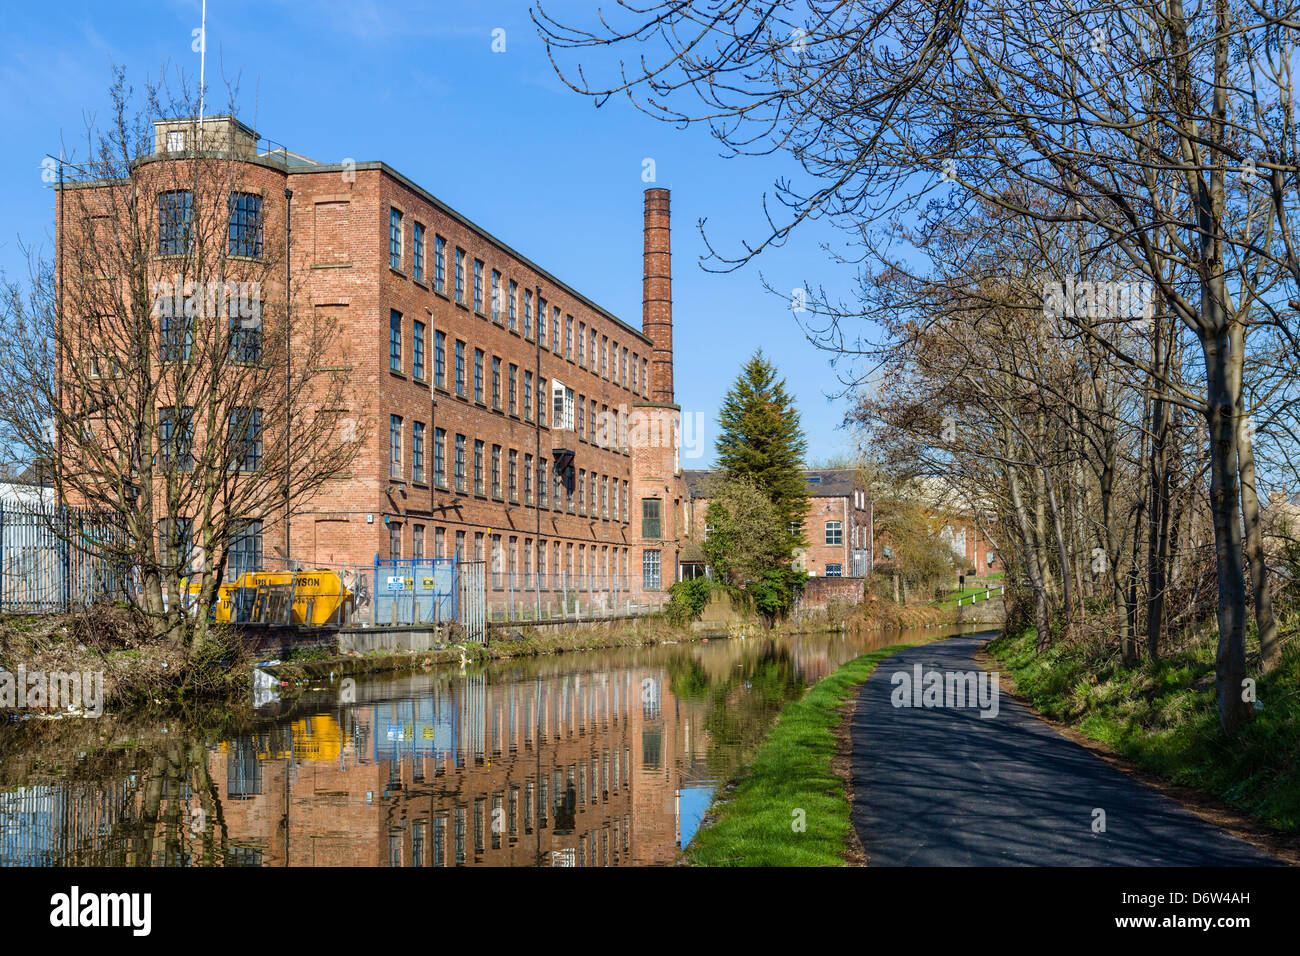 Industrial units on the Leeds to Liverpool Canal near Oddy Locks, Leeds, West Yorkshire, UK - Stock Image